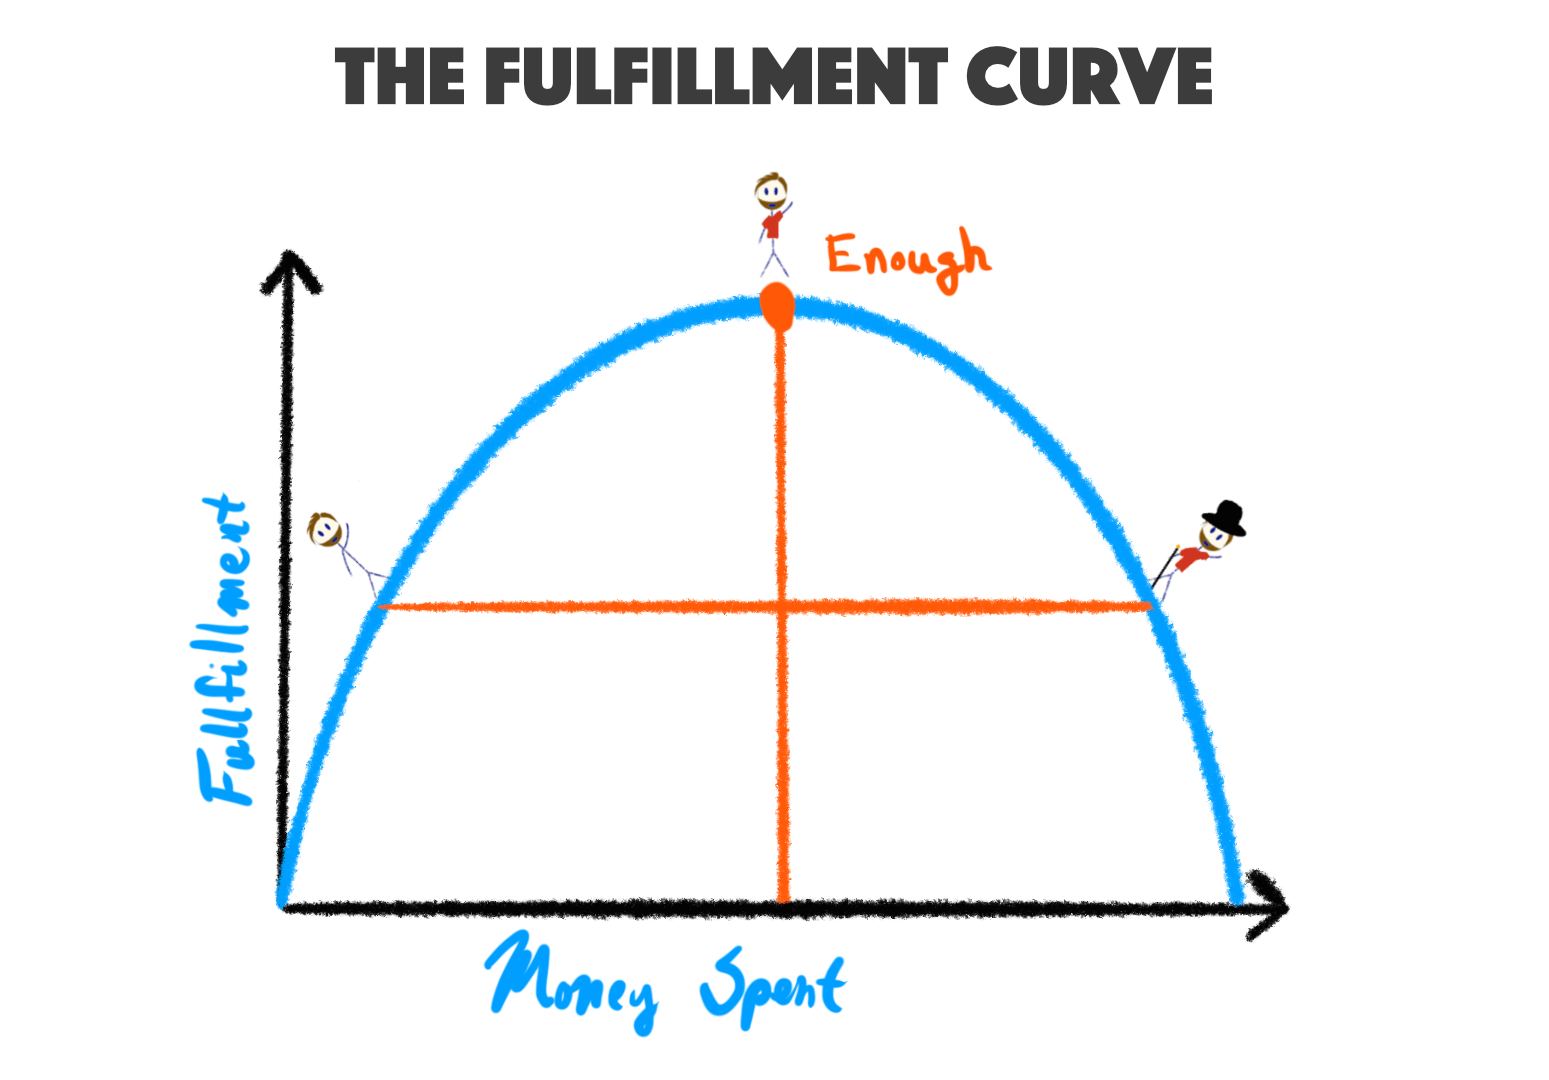 """The fulfillment curve: reach peak fulfillment after spending """"enough"""" money, but don't go too far."""